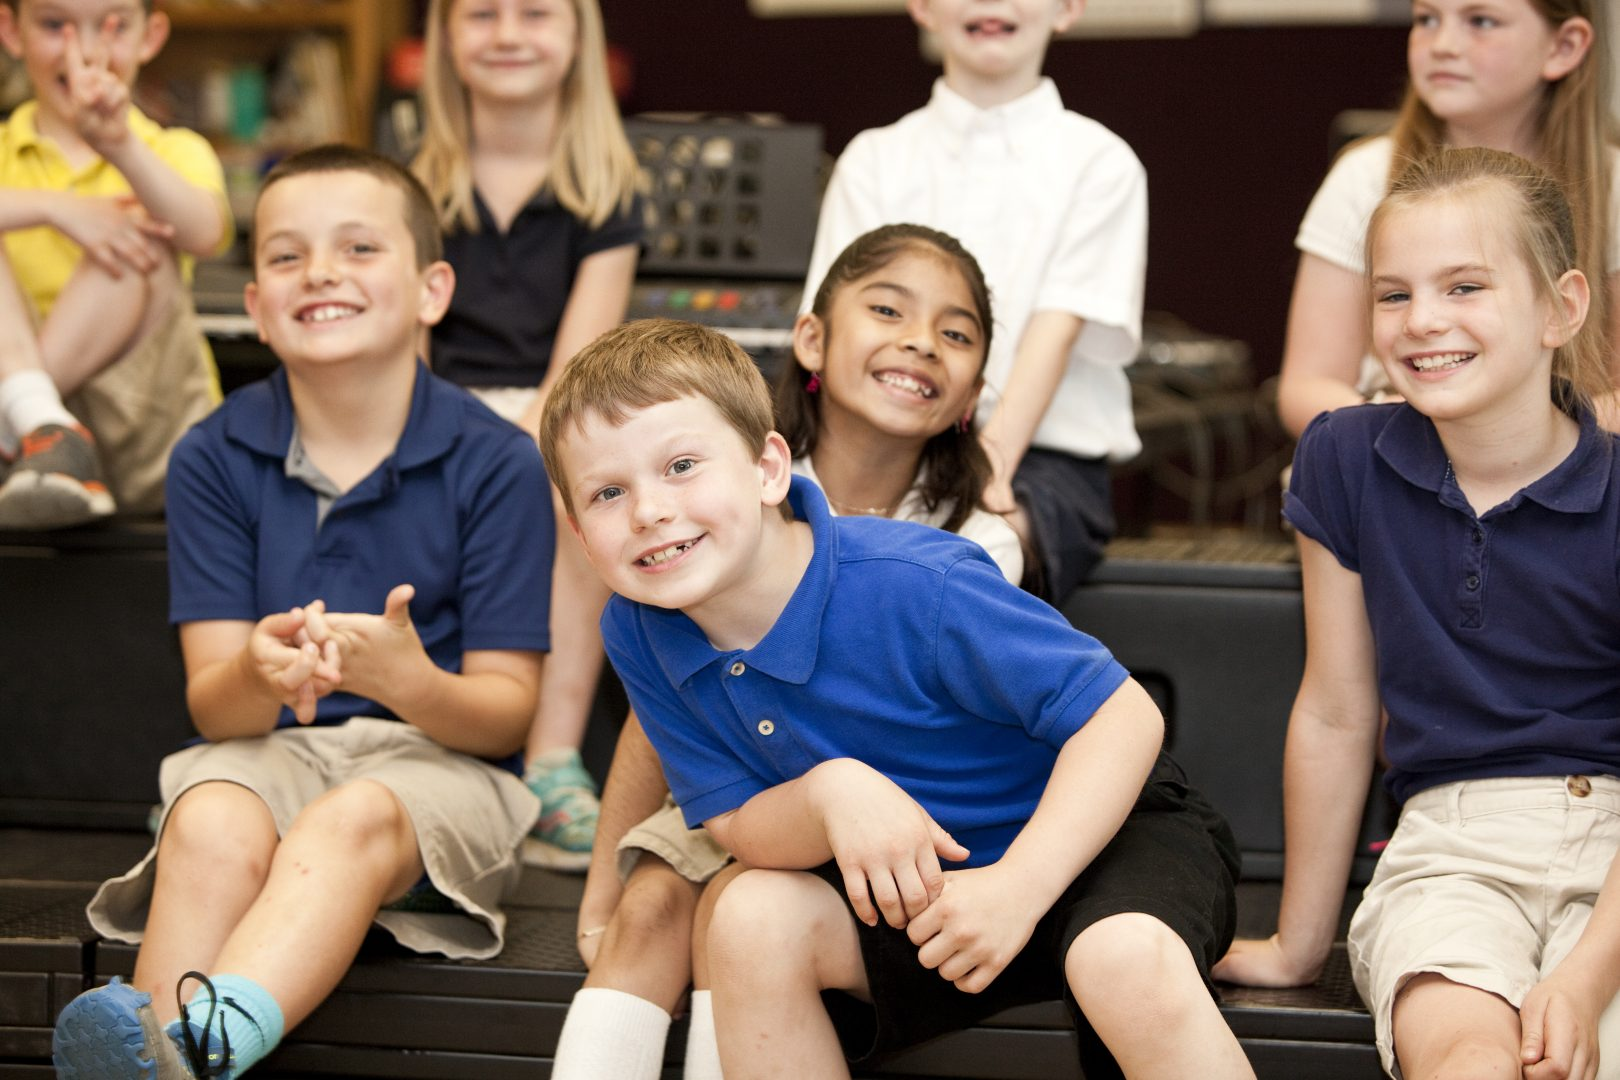 A group of elementary students smile for the camera